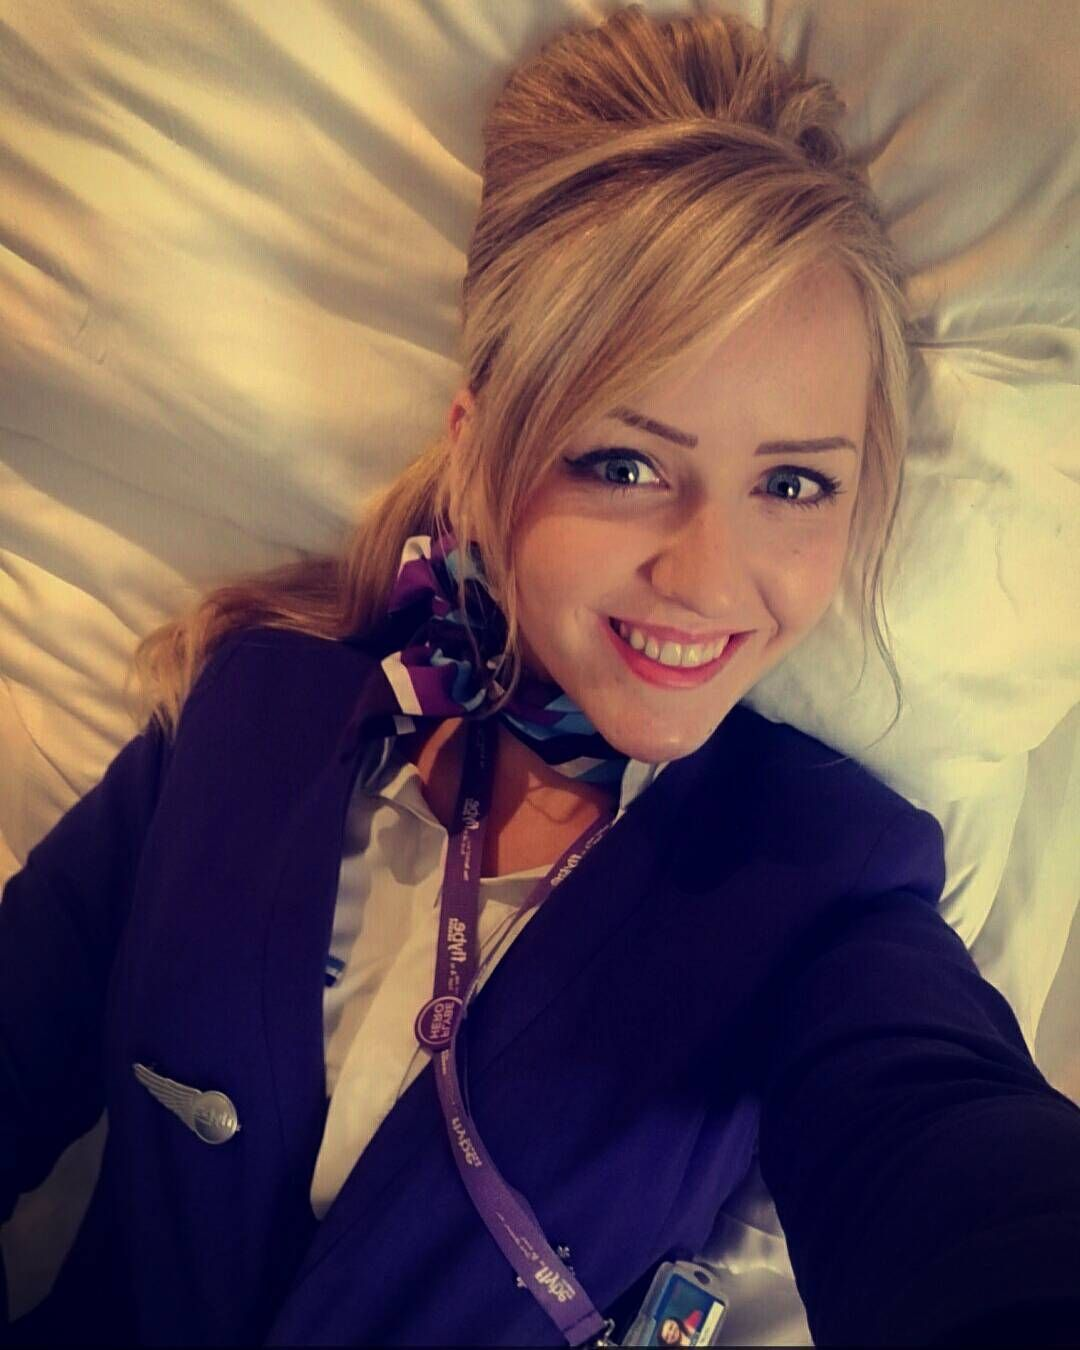 hotels are boring so let's take selfies #soz #crewlife #airhostess